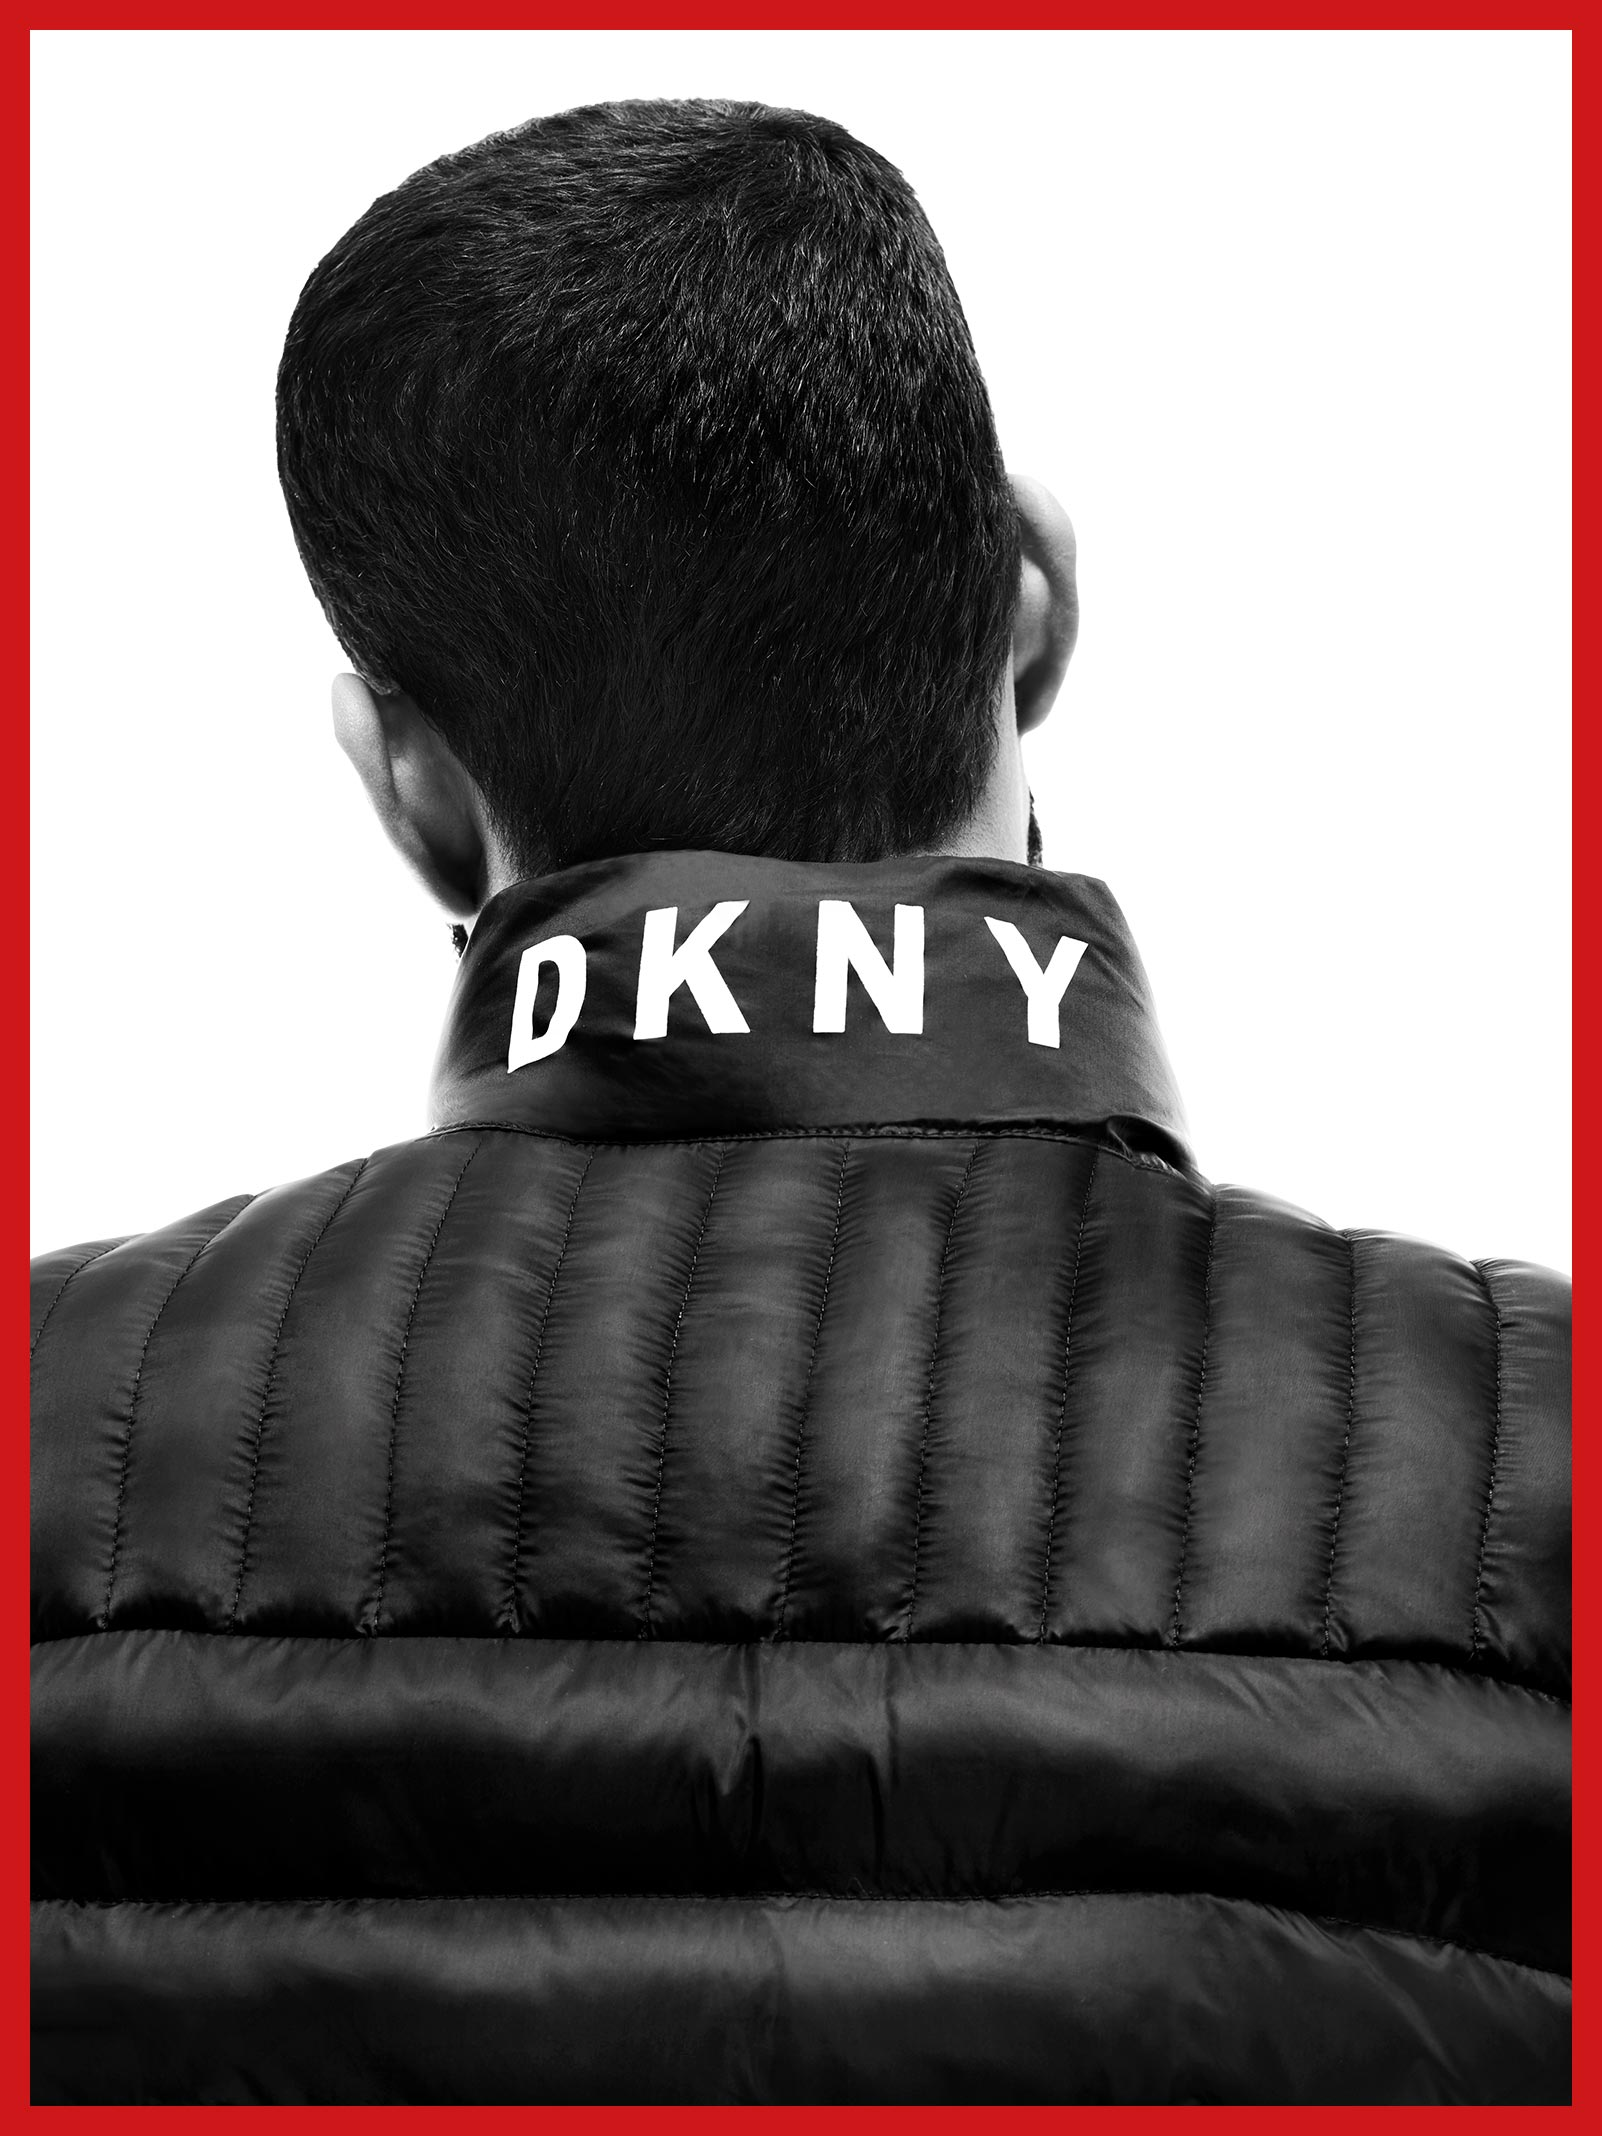 DKNY Fall 2019 Ad Campaign New York State of Mind